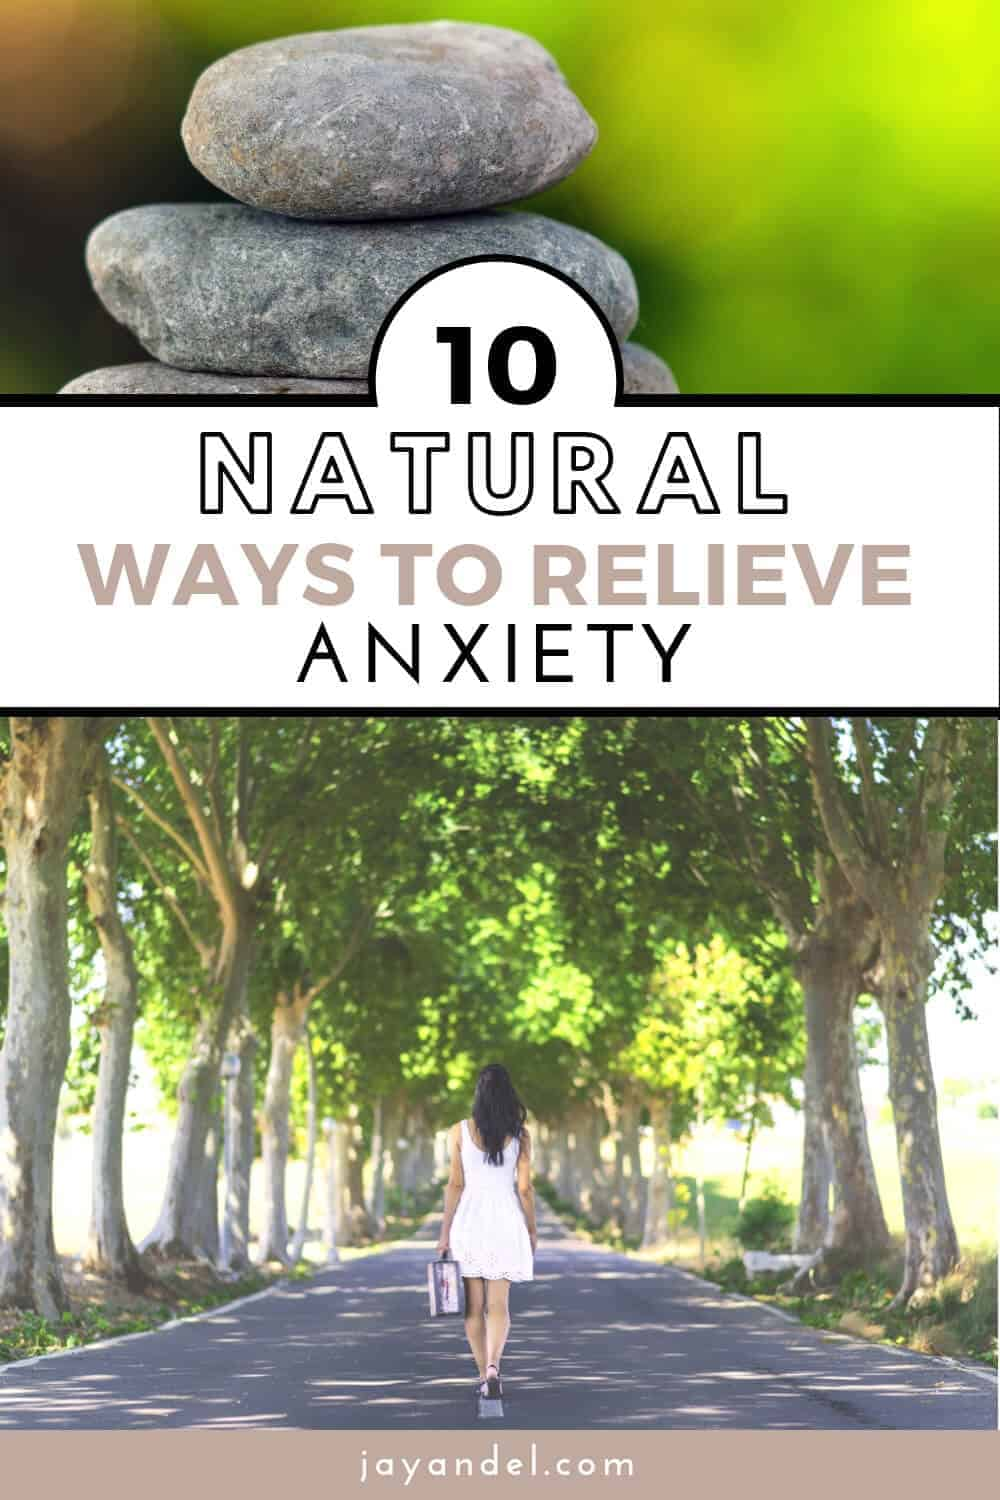 10 natural ways to relieve anxiety